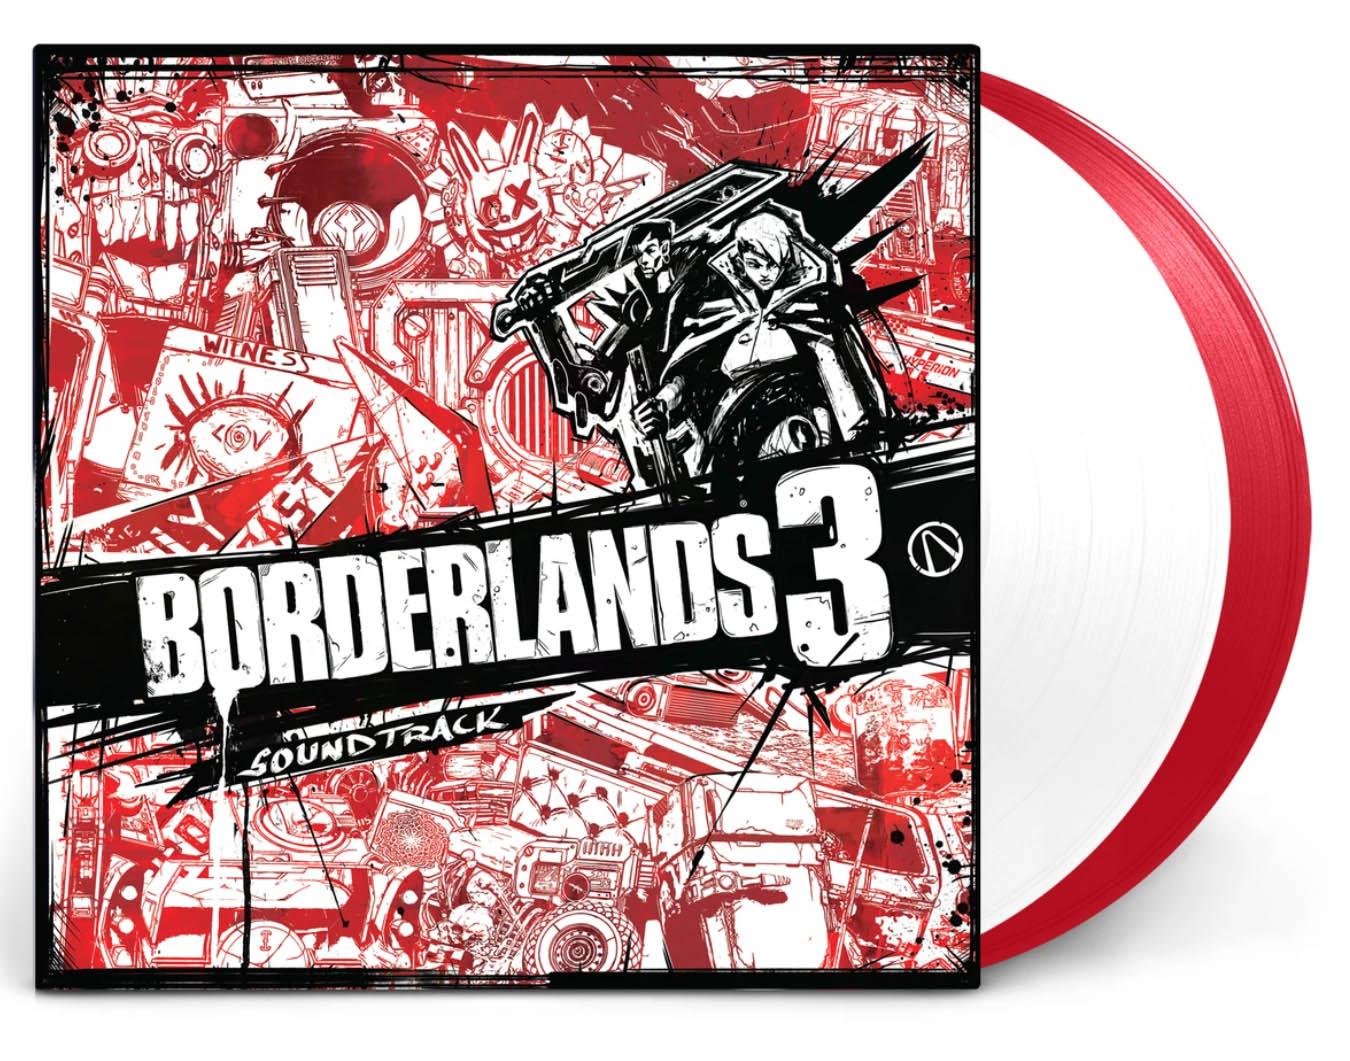 Borderlands Collection on Vinyl